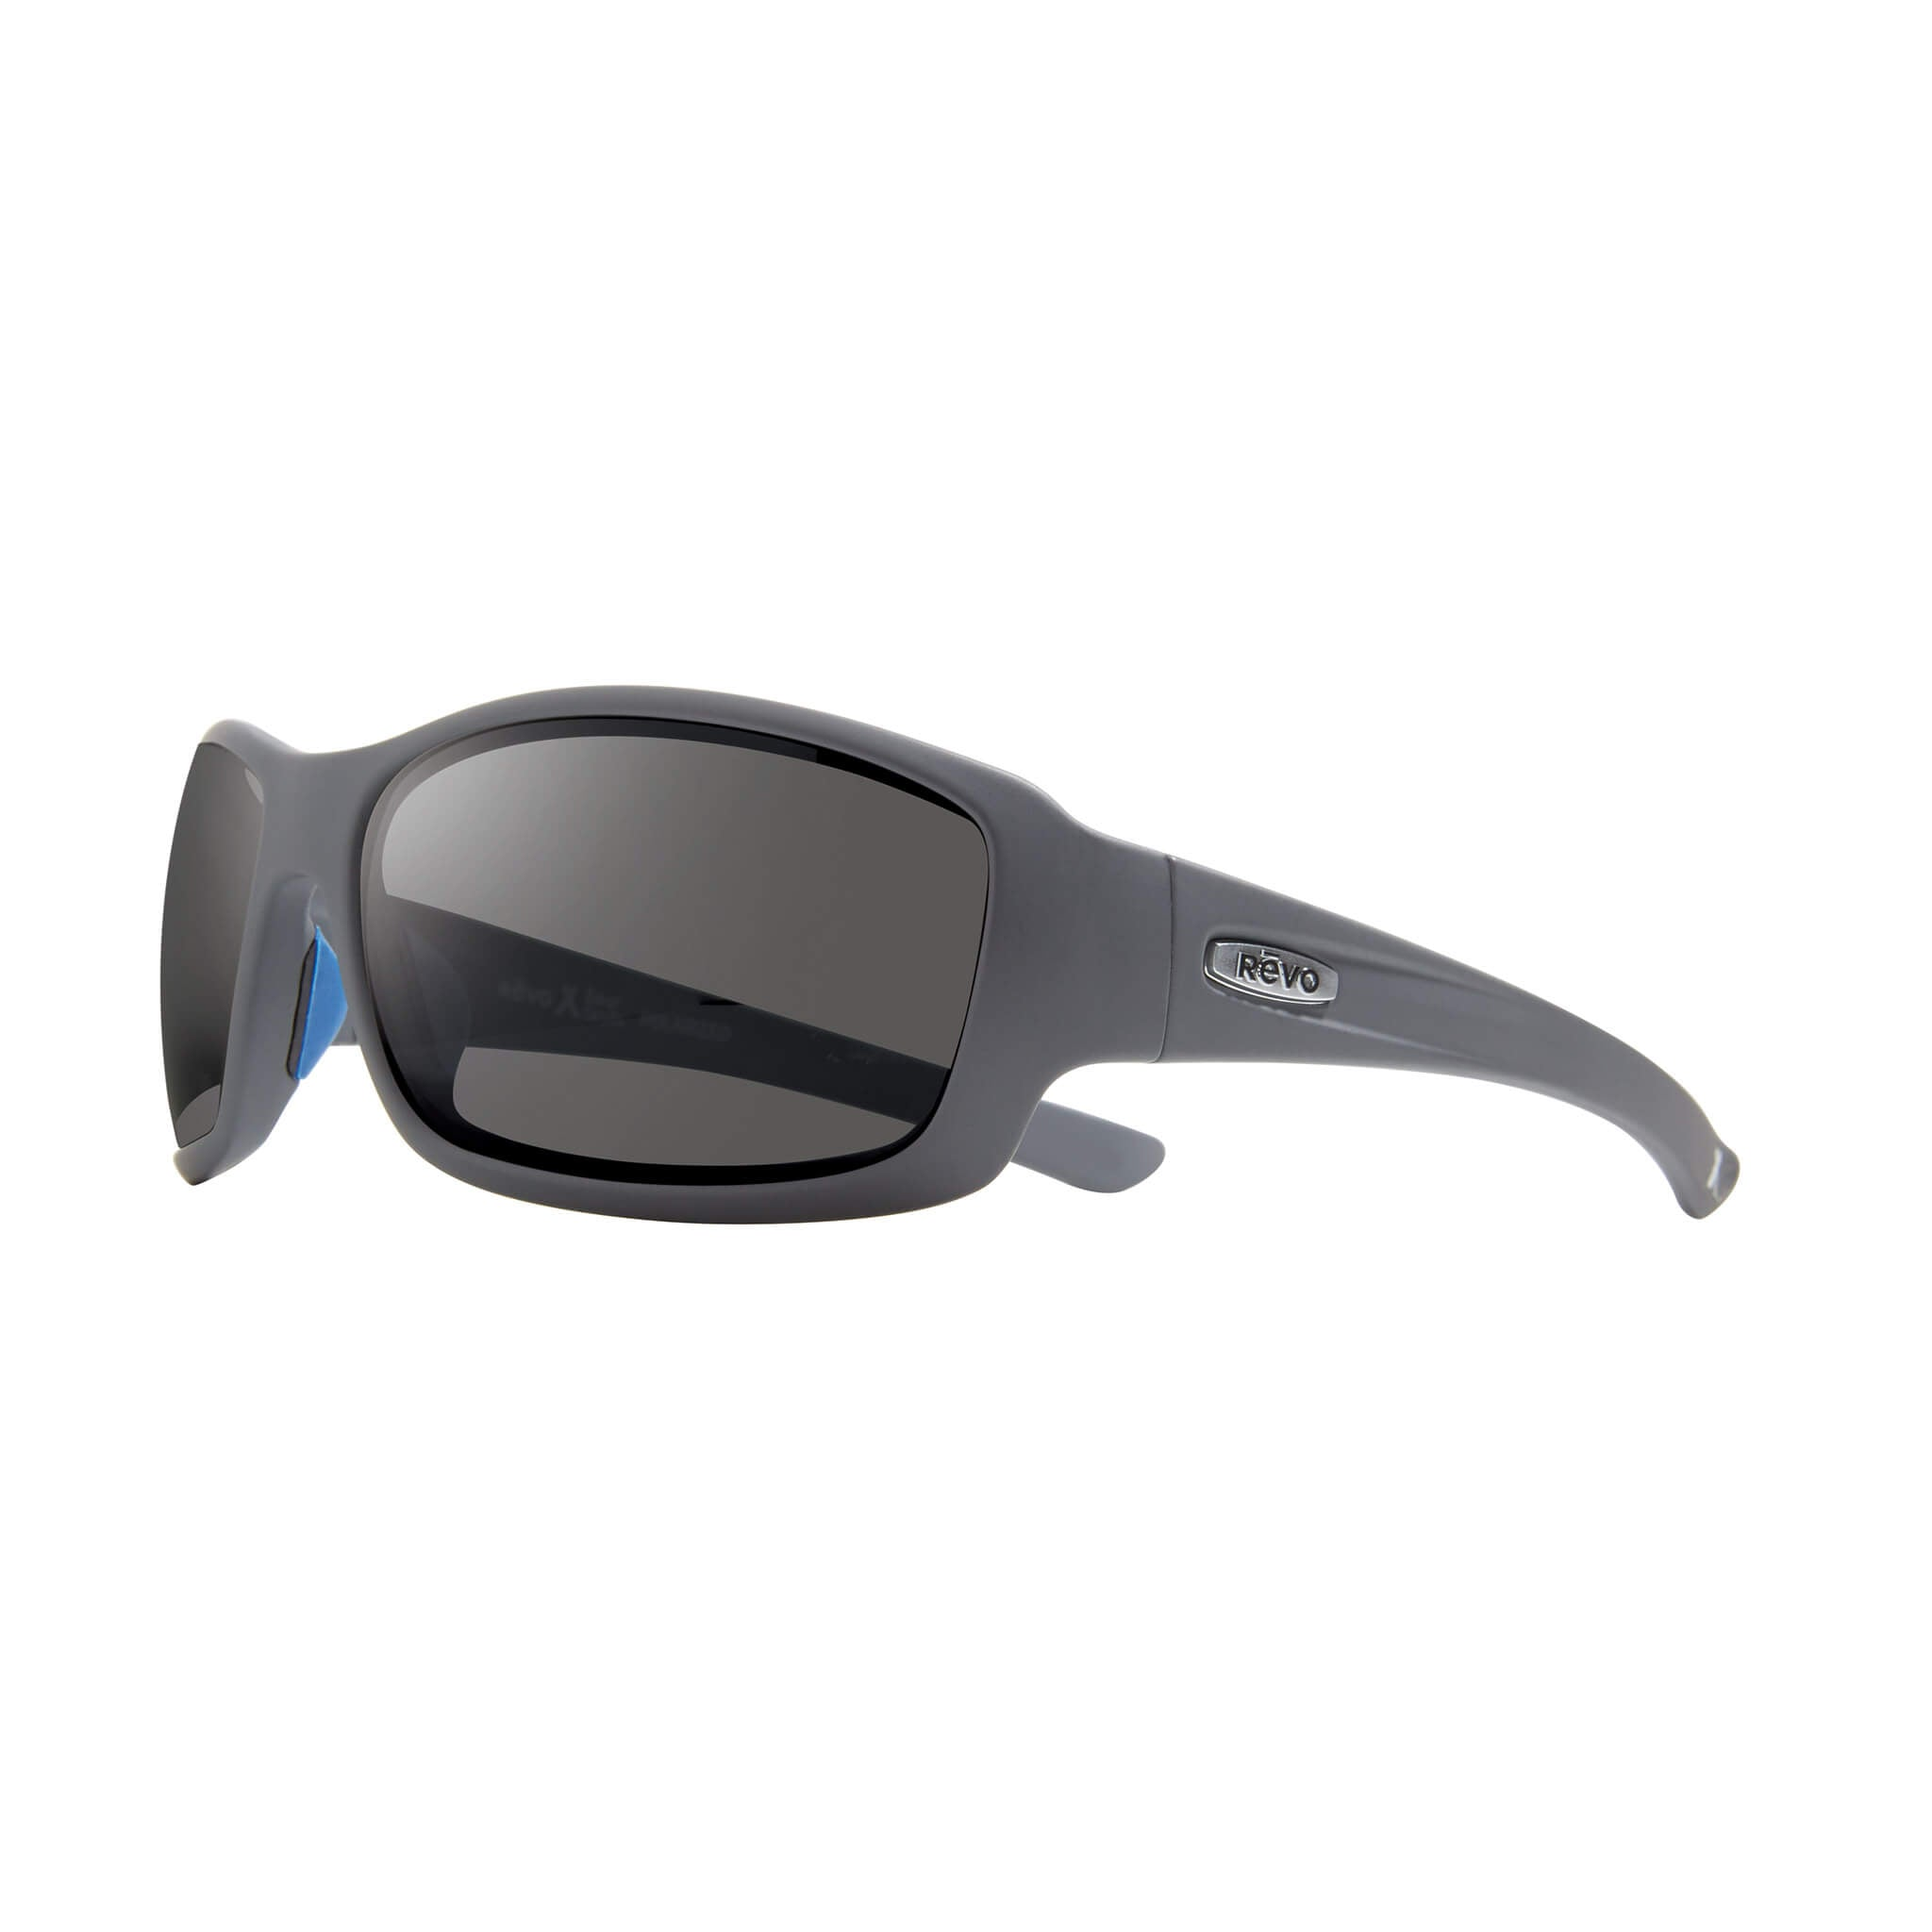 Maverick Matte graphite + graphite lens:Side view of Bear Grylls Revo Matte Graphite with Graphite lens sunglasses